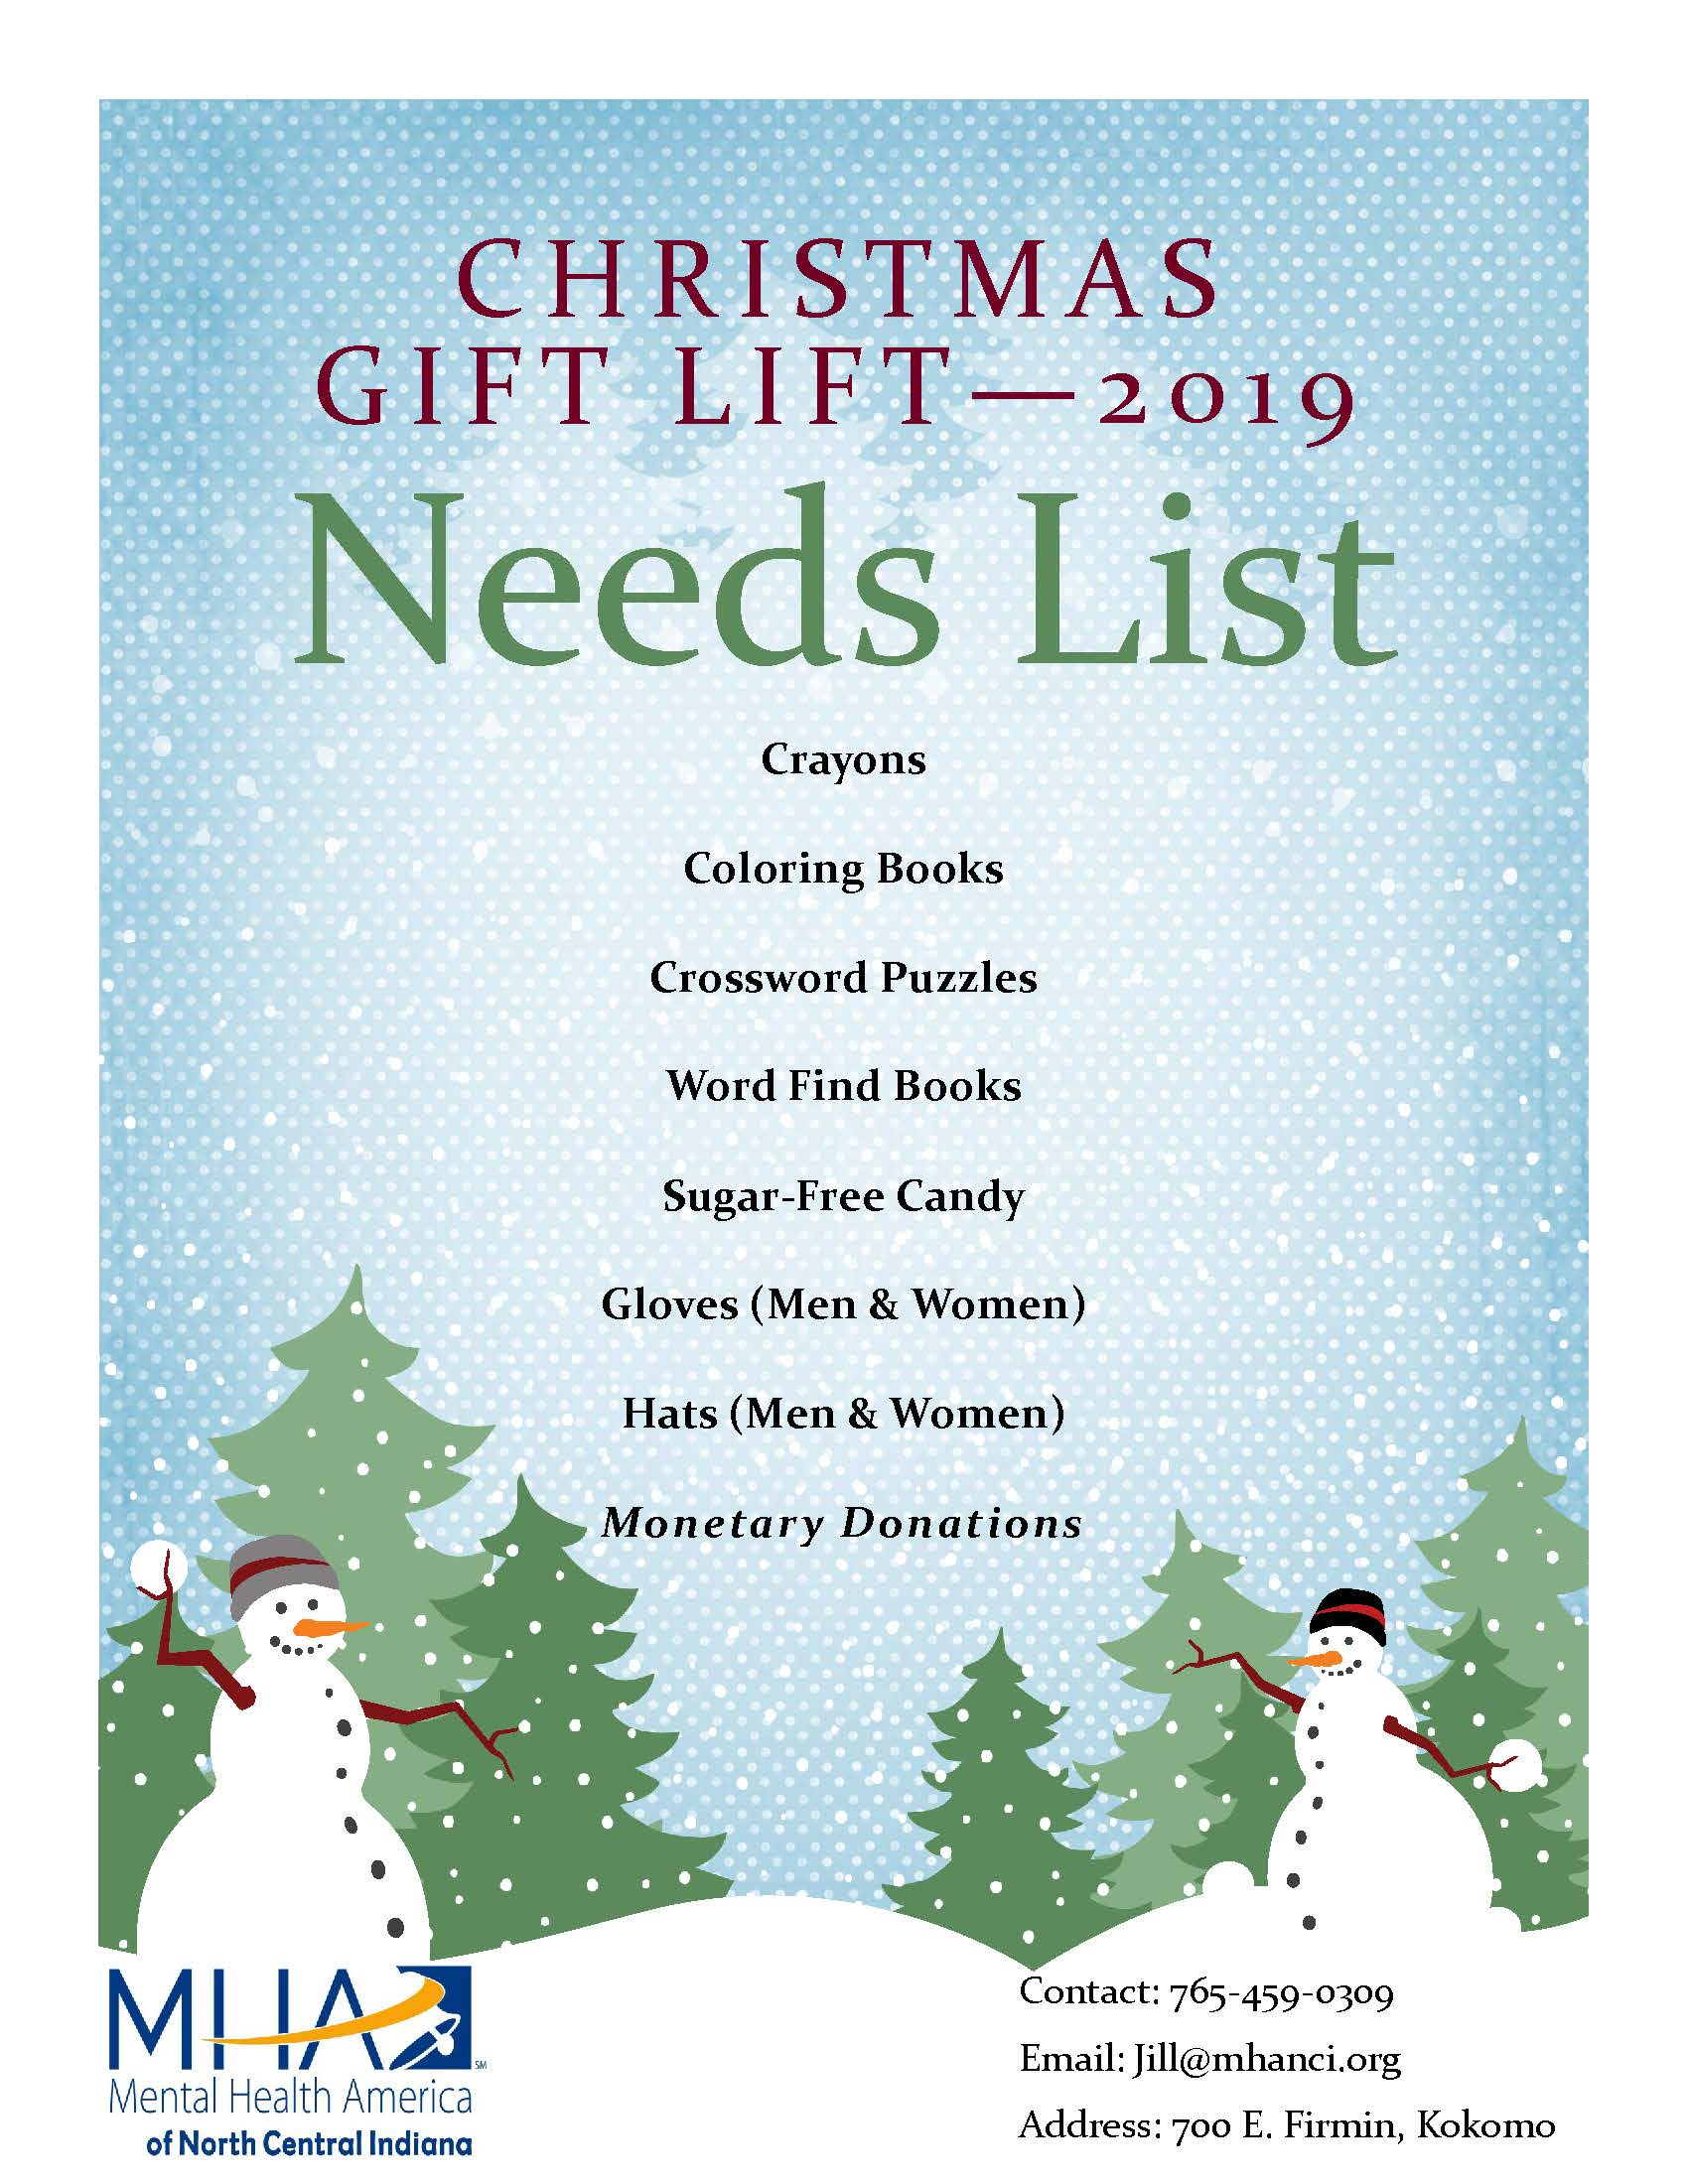 Gift Lift Need Listing 2019